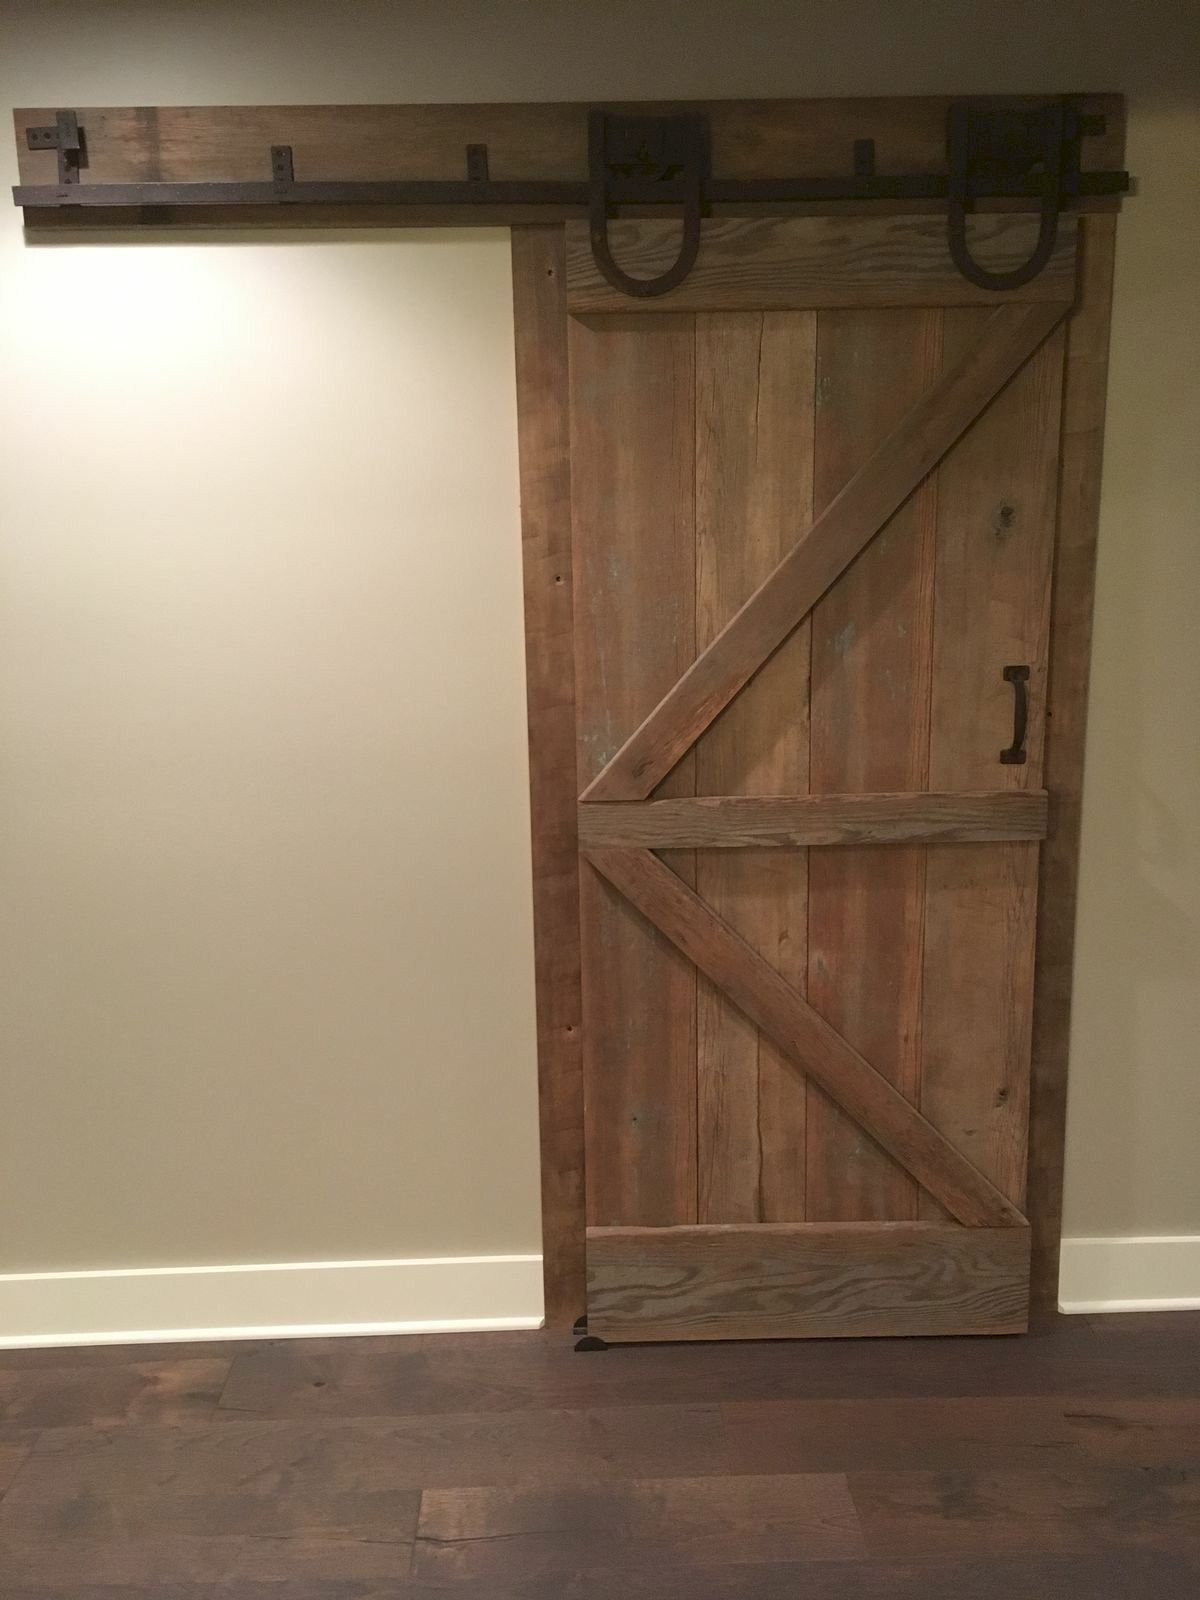 70 Rustic Home Decor Ideas for Doors and Windows (52)